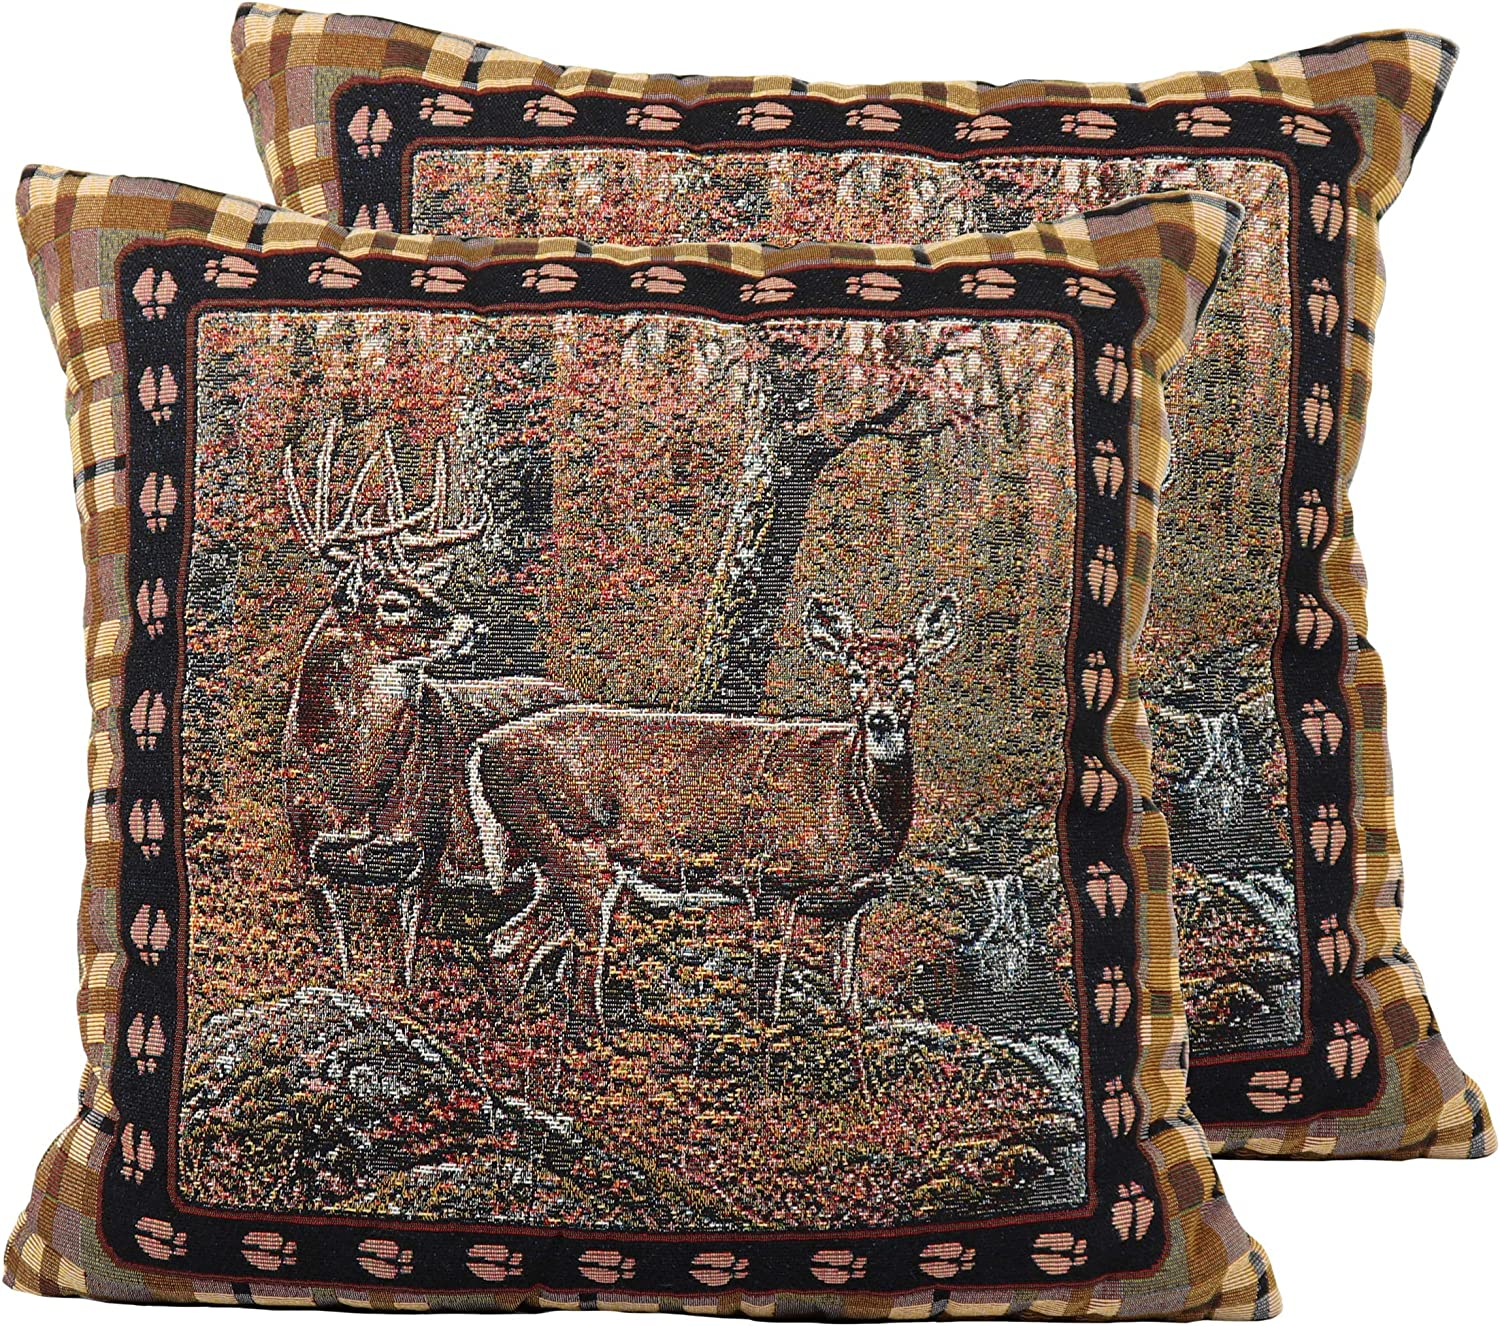 River's Edge Products Deer Tapestry Throw Pillows, Pair with Removable Covers, 18 by 18 Inch Square